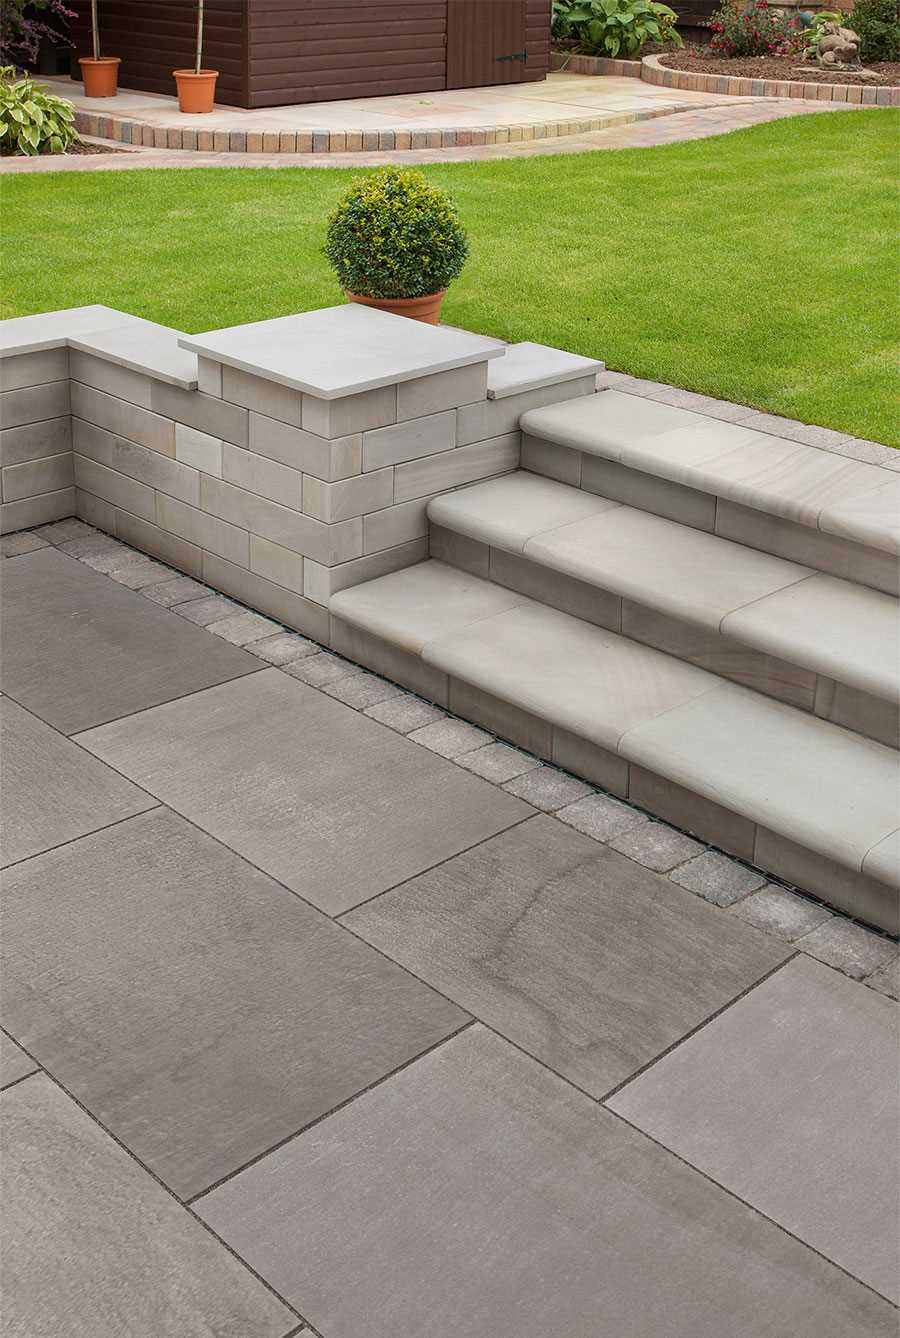 fairstone-flamed-stone-garden-paving_1_hz.jpg